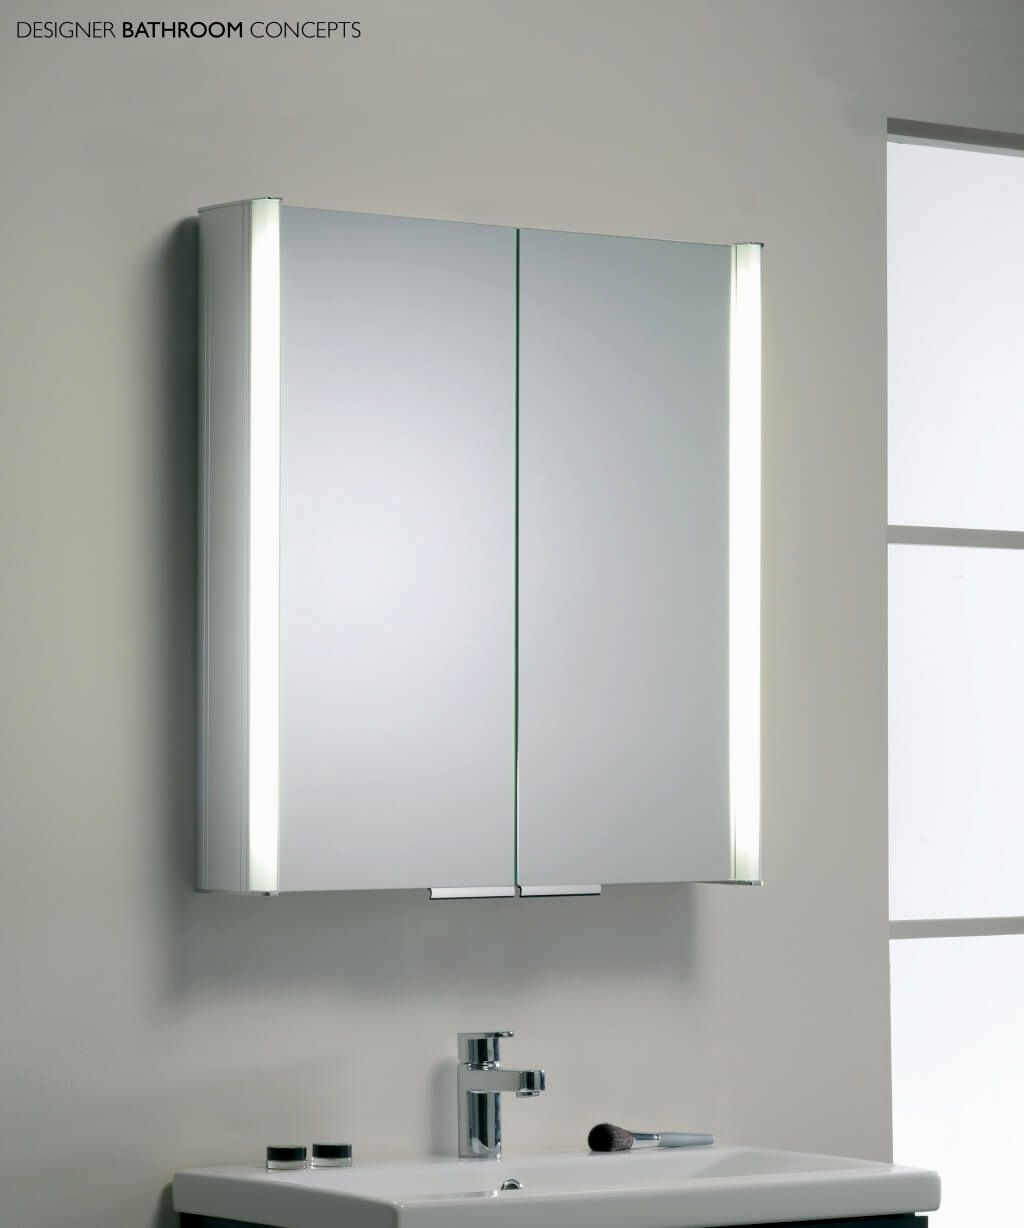 best mirror for bathroom architecture-New Mirror for Bathroom Design